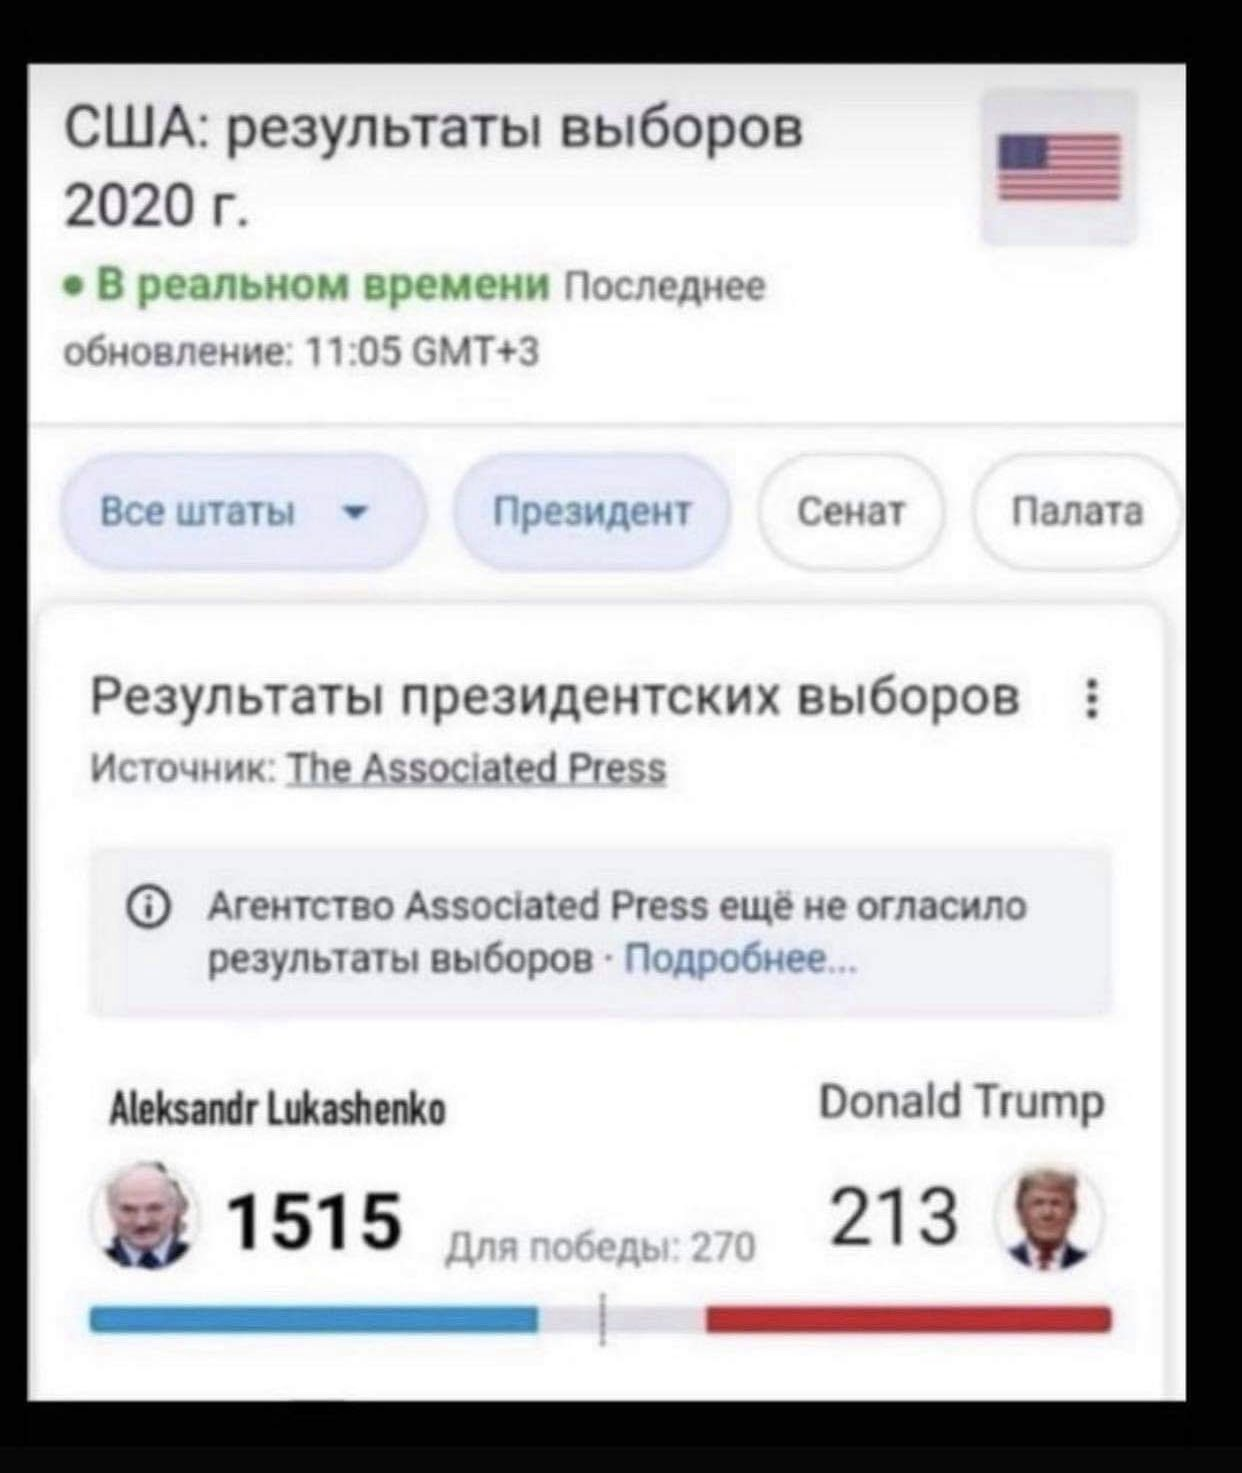 A meme showing Lukashenko winning the US election with 1515 electoral college votes